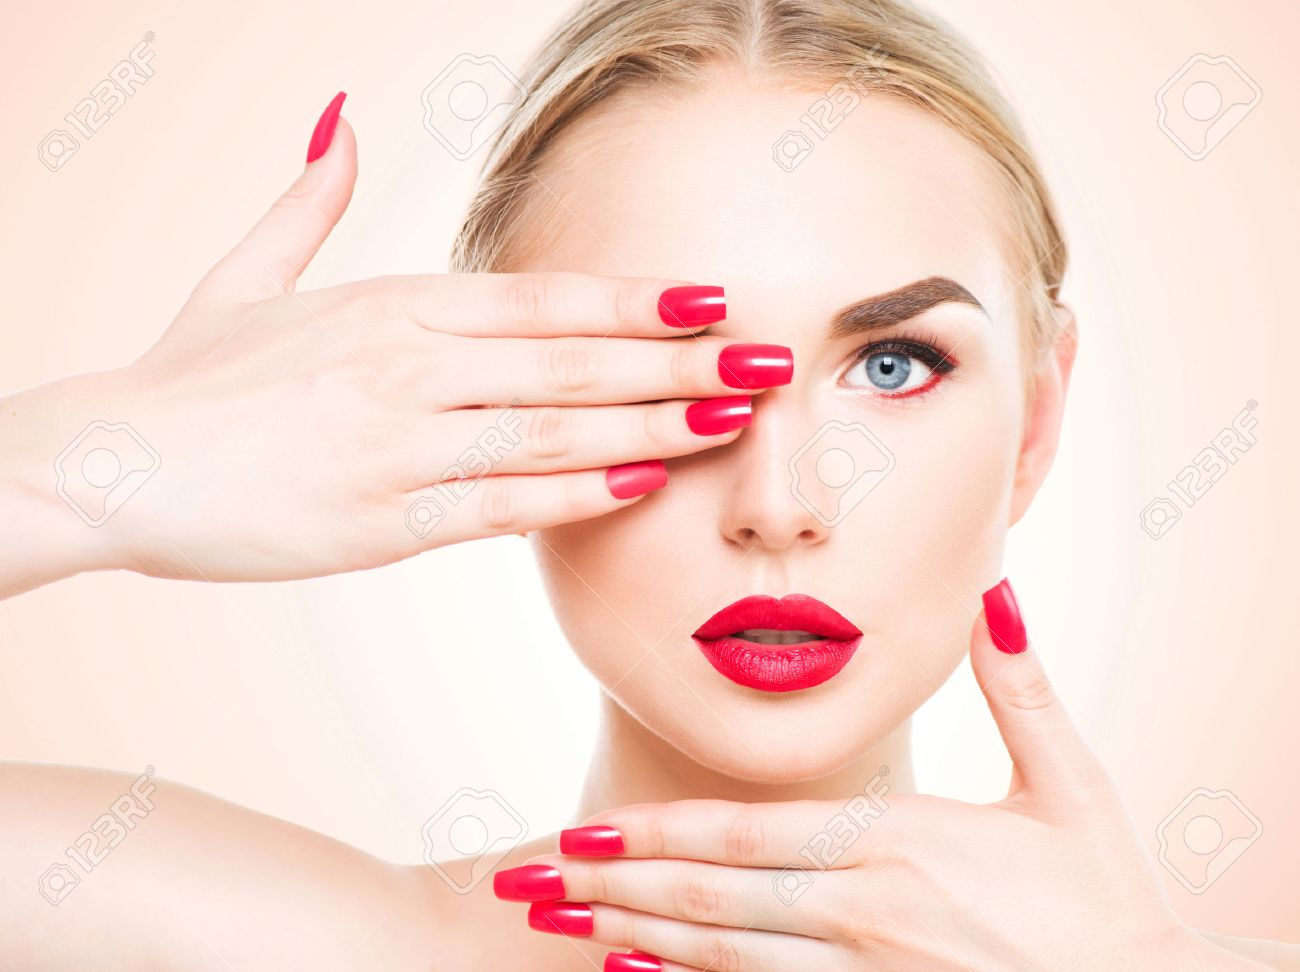 Beautiful Woman With Blond Hair. Fashion Model With Red Lipstick ...